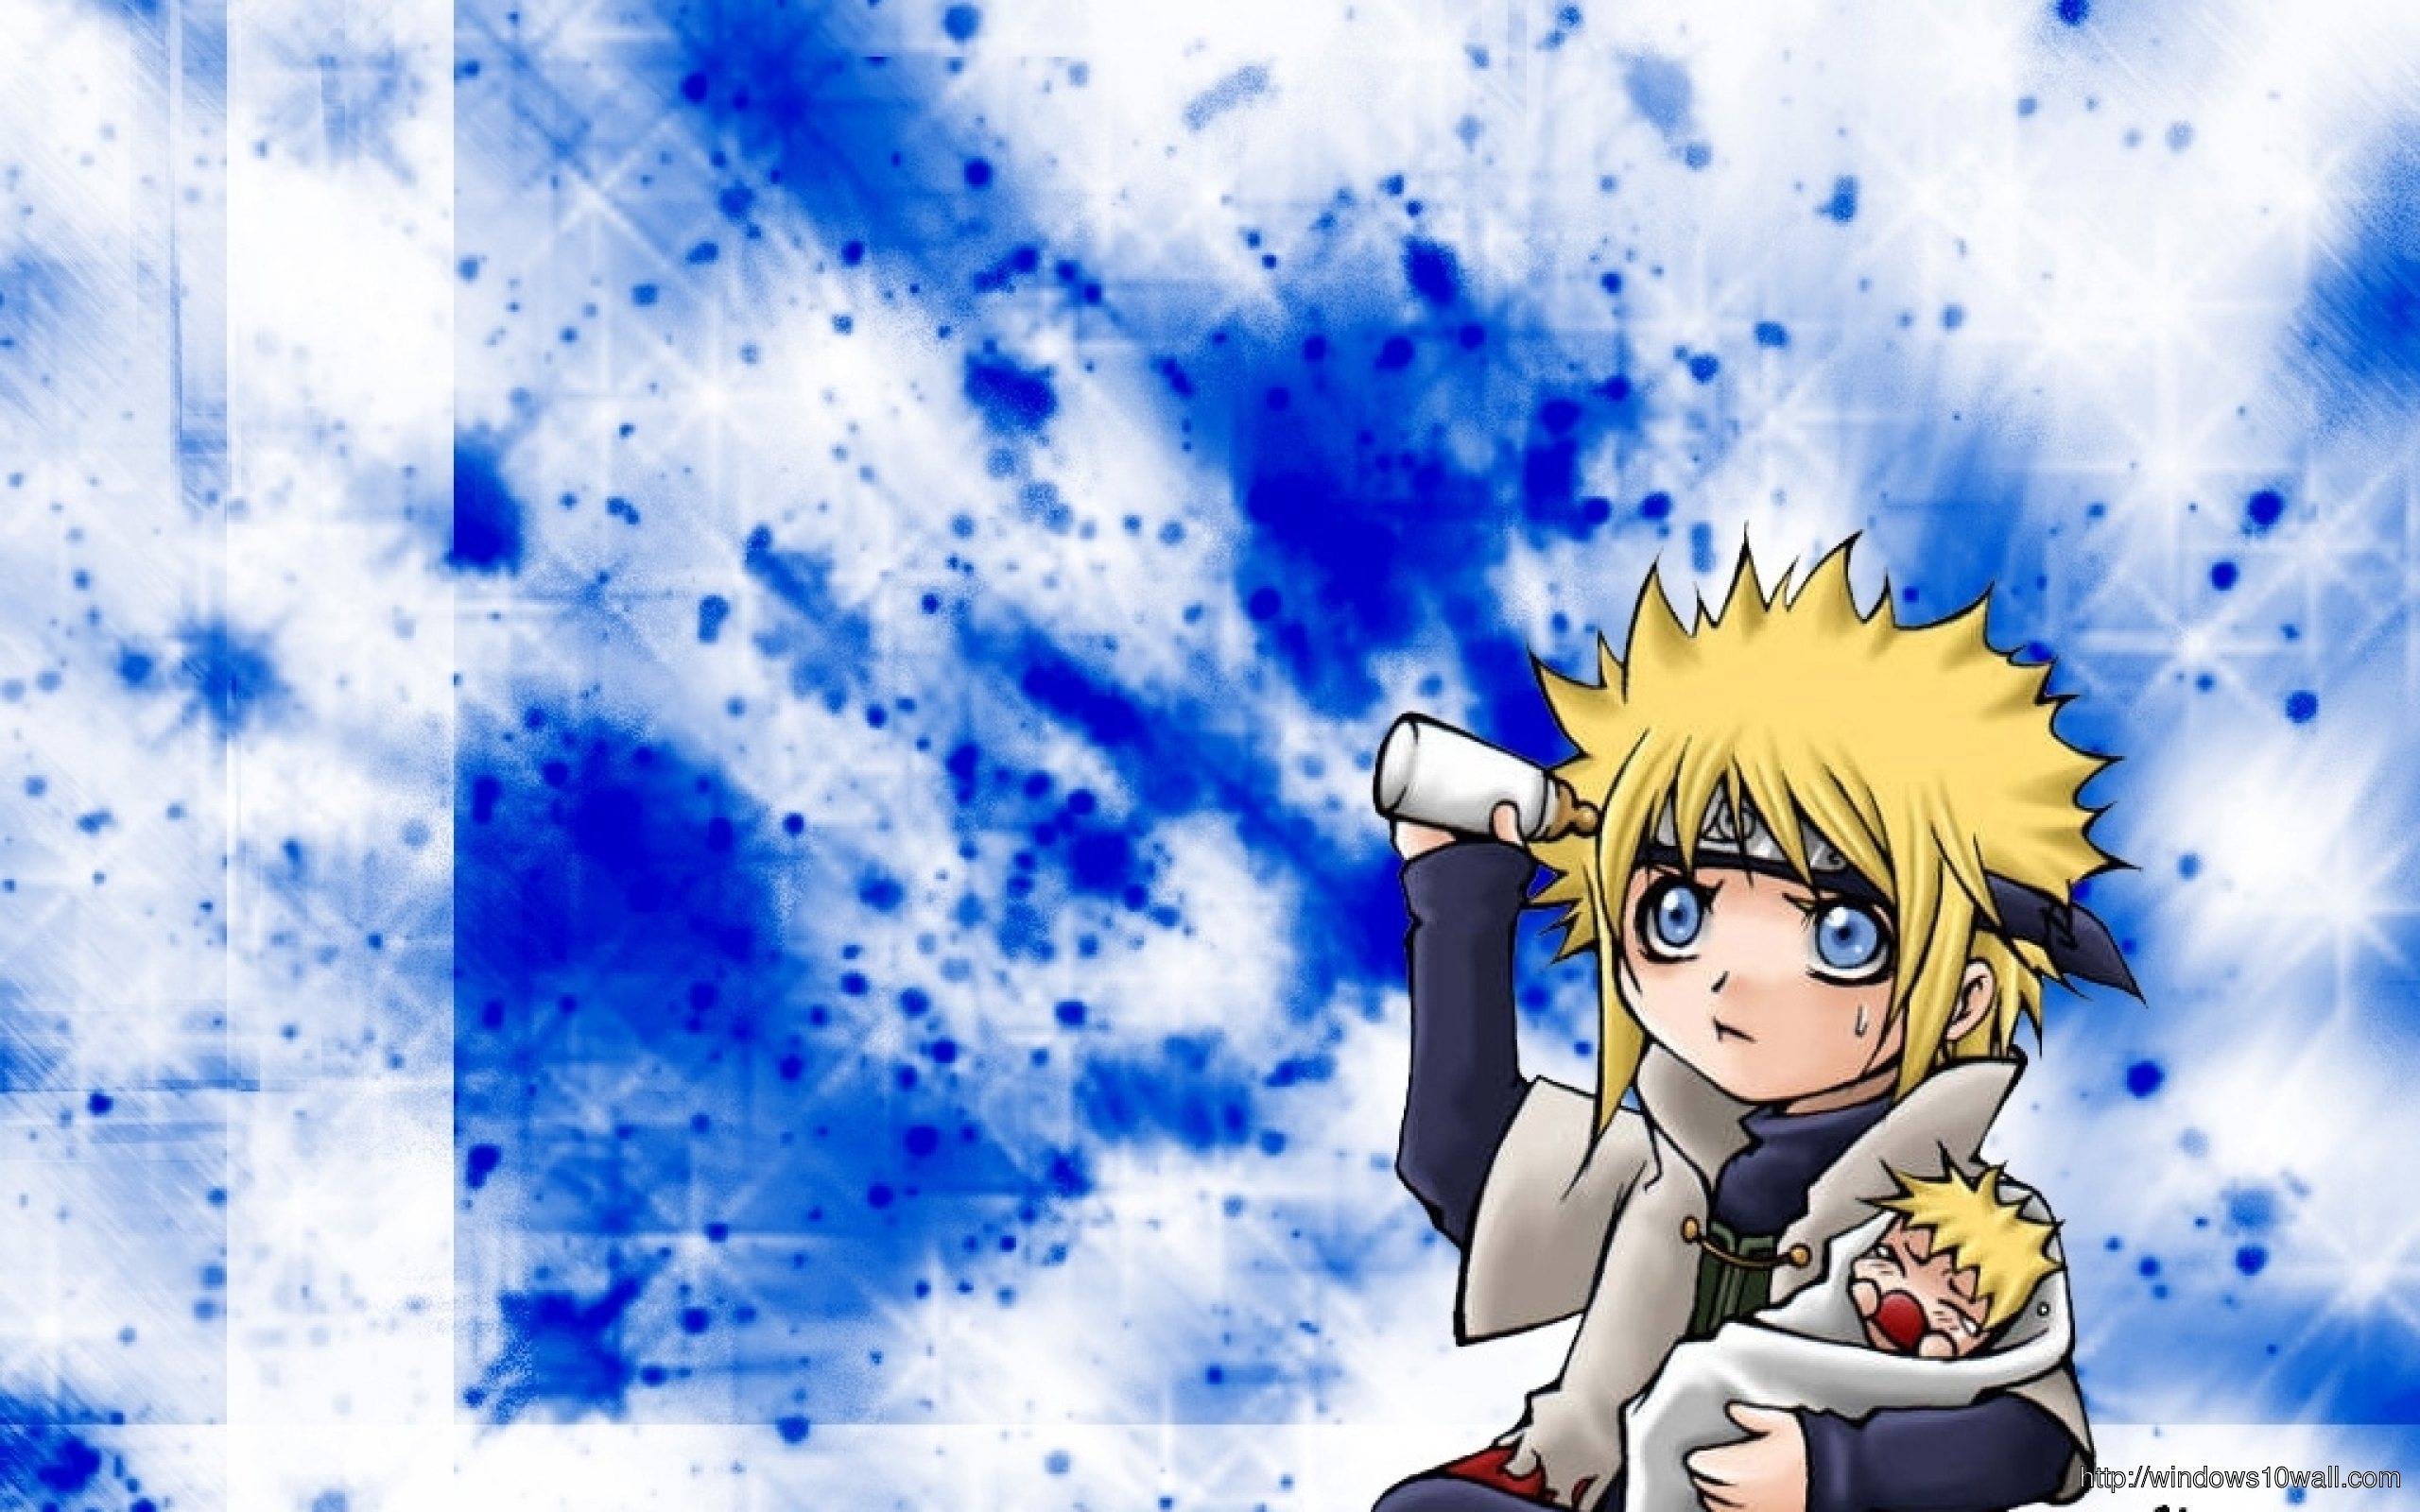 Sad Girl Hd Wallpaper With Quotes Naruto Page 3 Of 10 Windows 10 Wallpapers